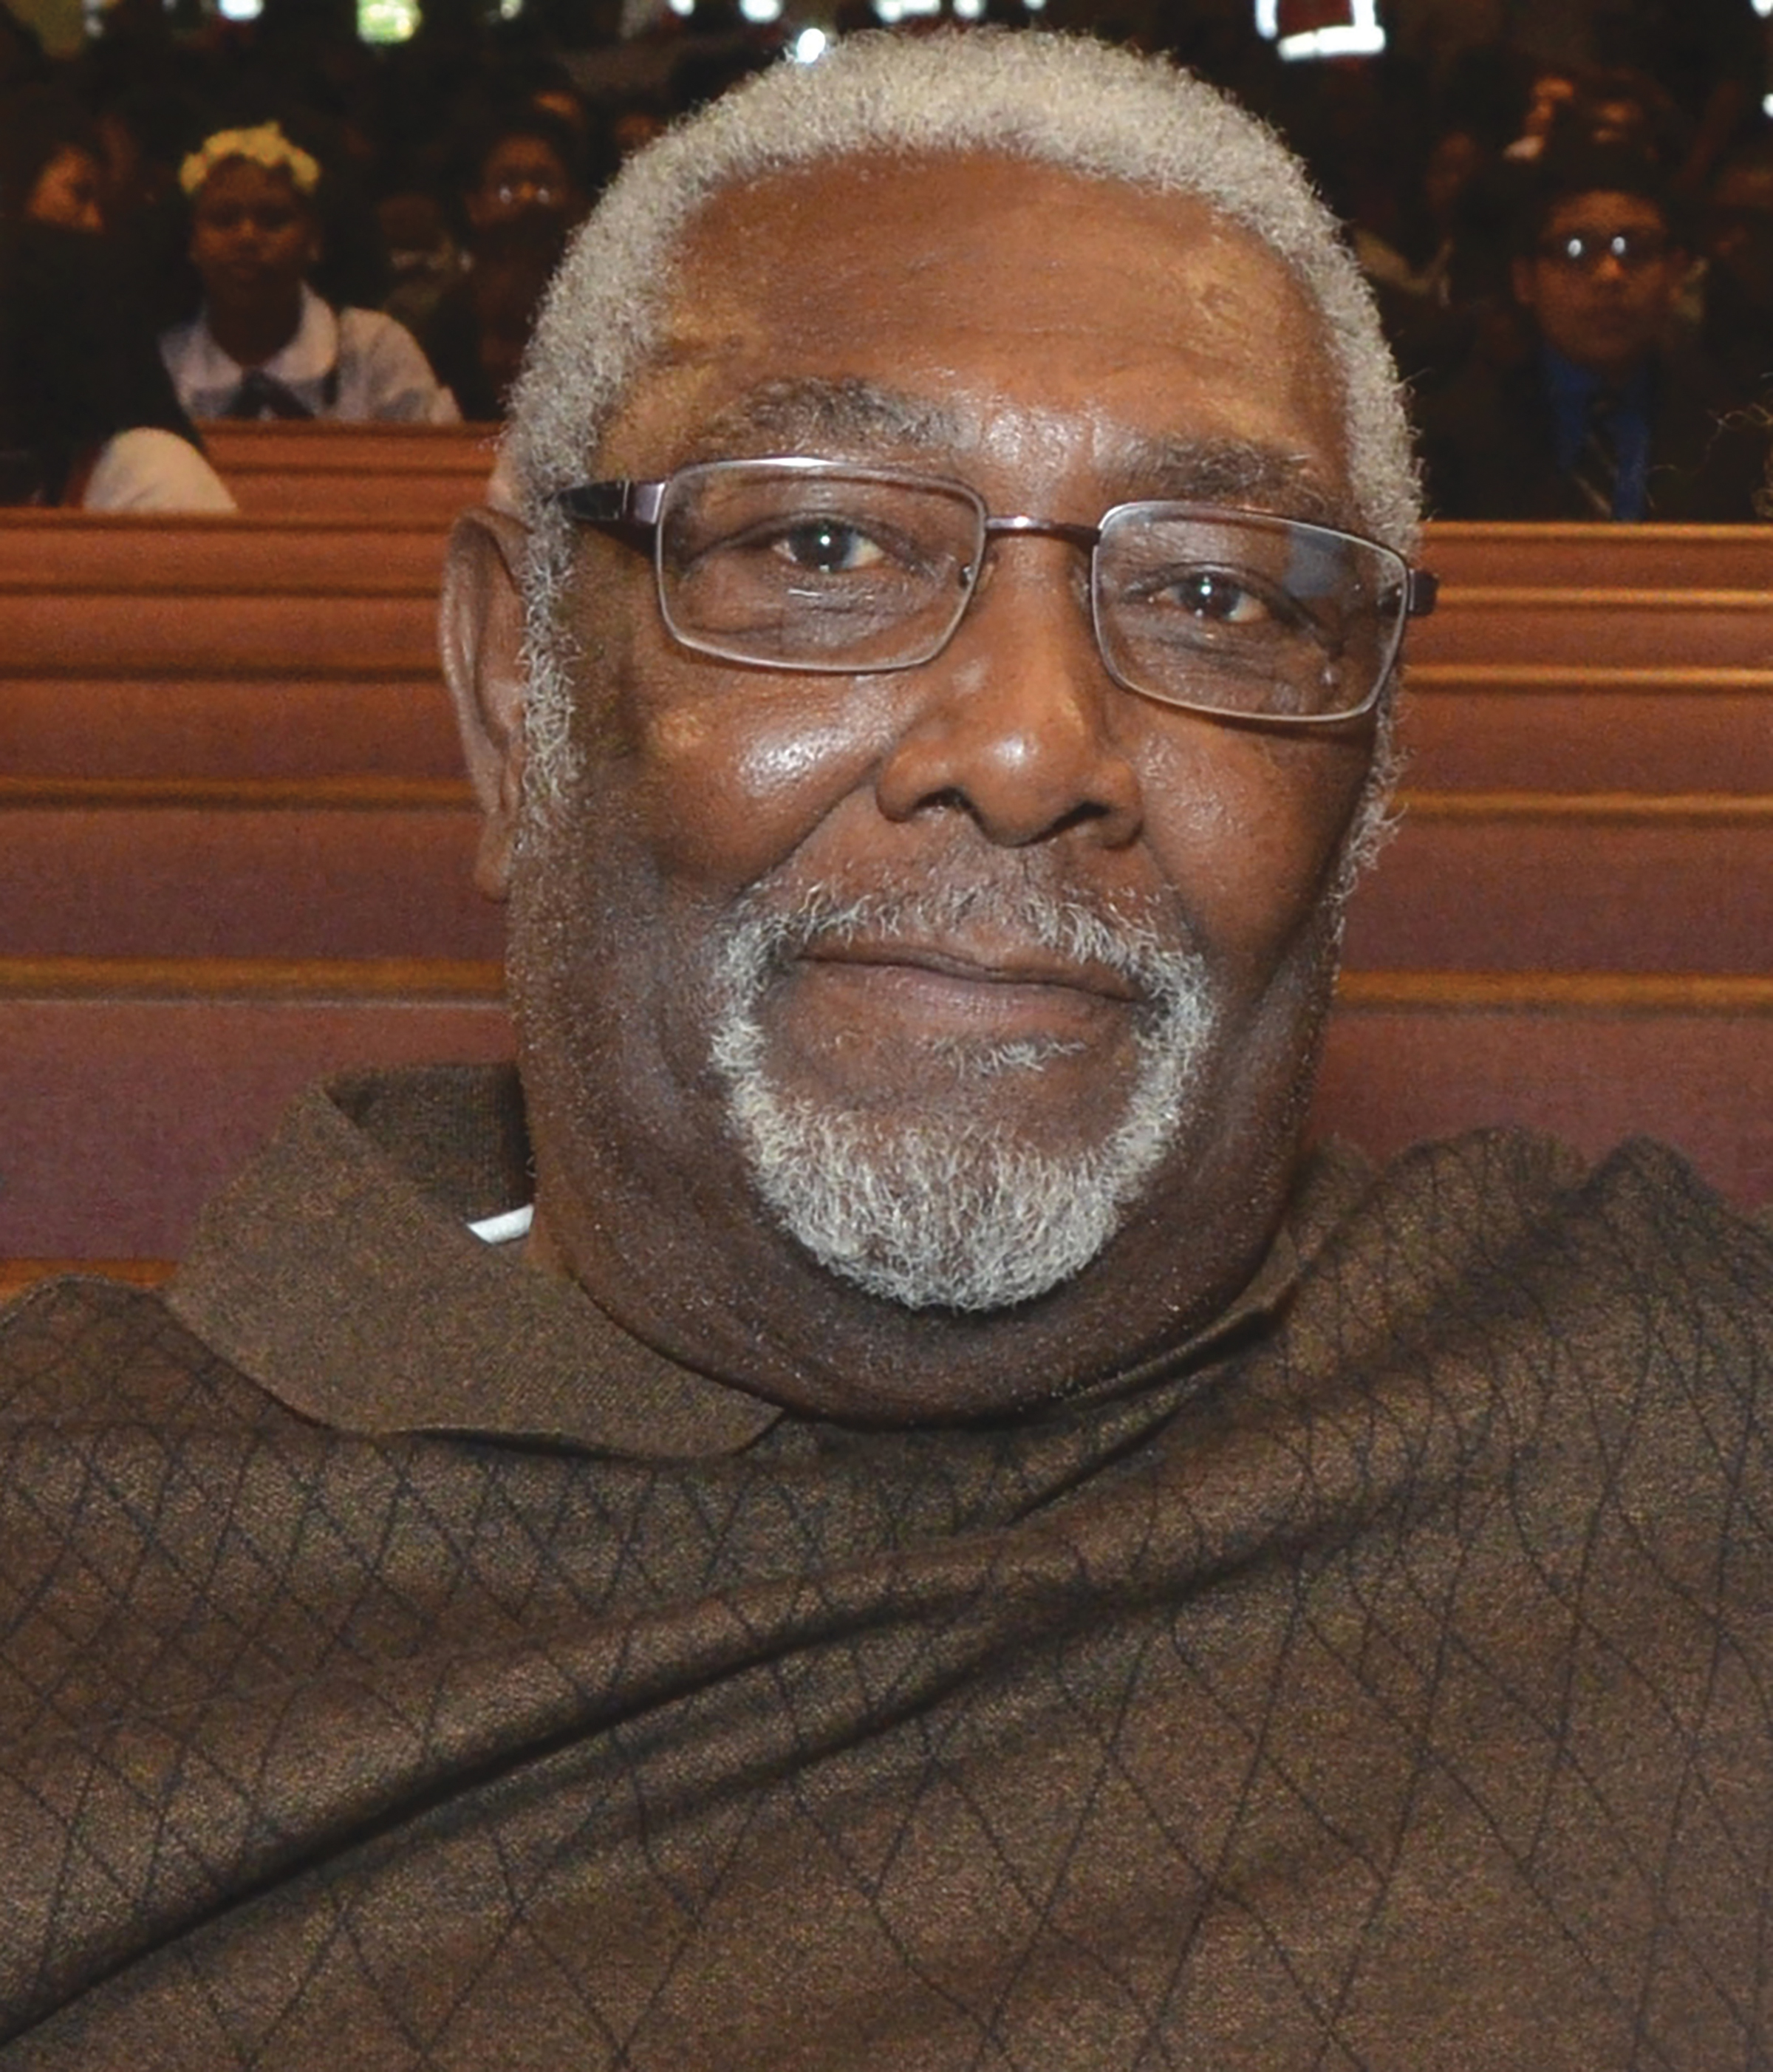 Description: Baxter Leach was one of the 1968 Sanitation Workers whose strike drew Dr. Martin Luther King Jr. to Memphis. (Photo: Tyrone P. Easley)